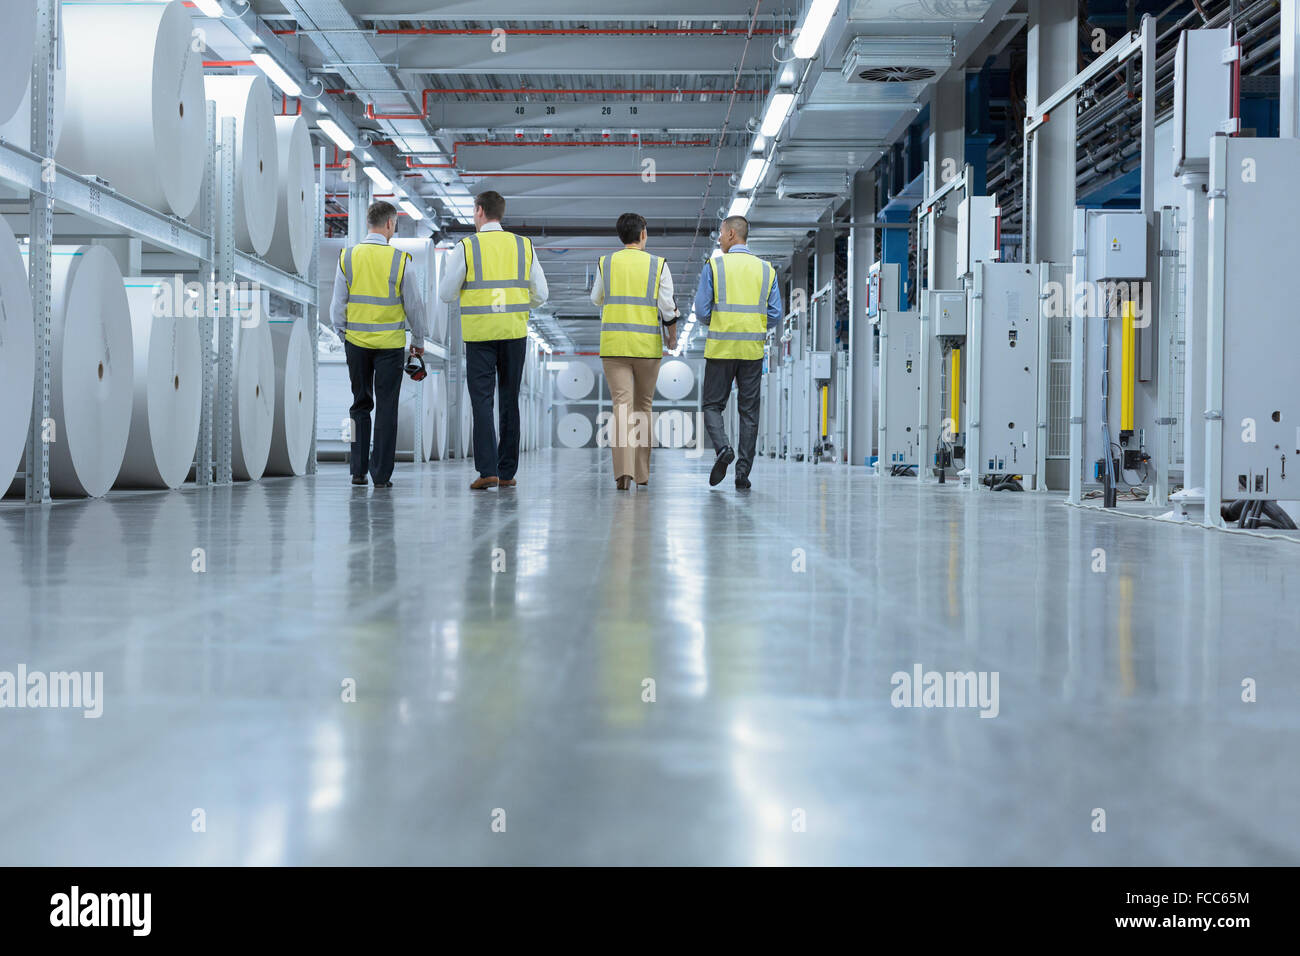 Workers in reflective clothing walking past large paper spools in printing plant - Stock Image